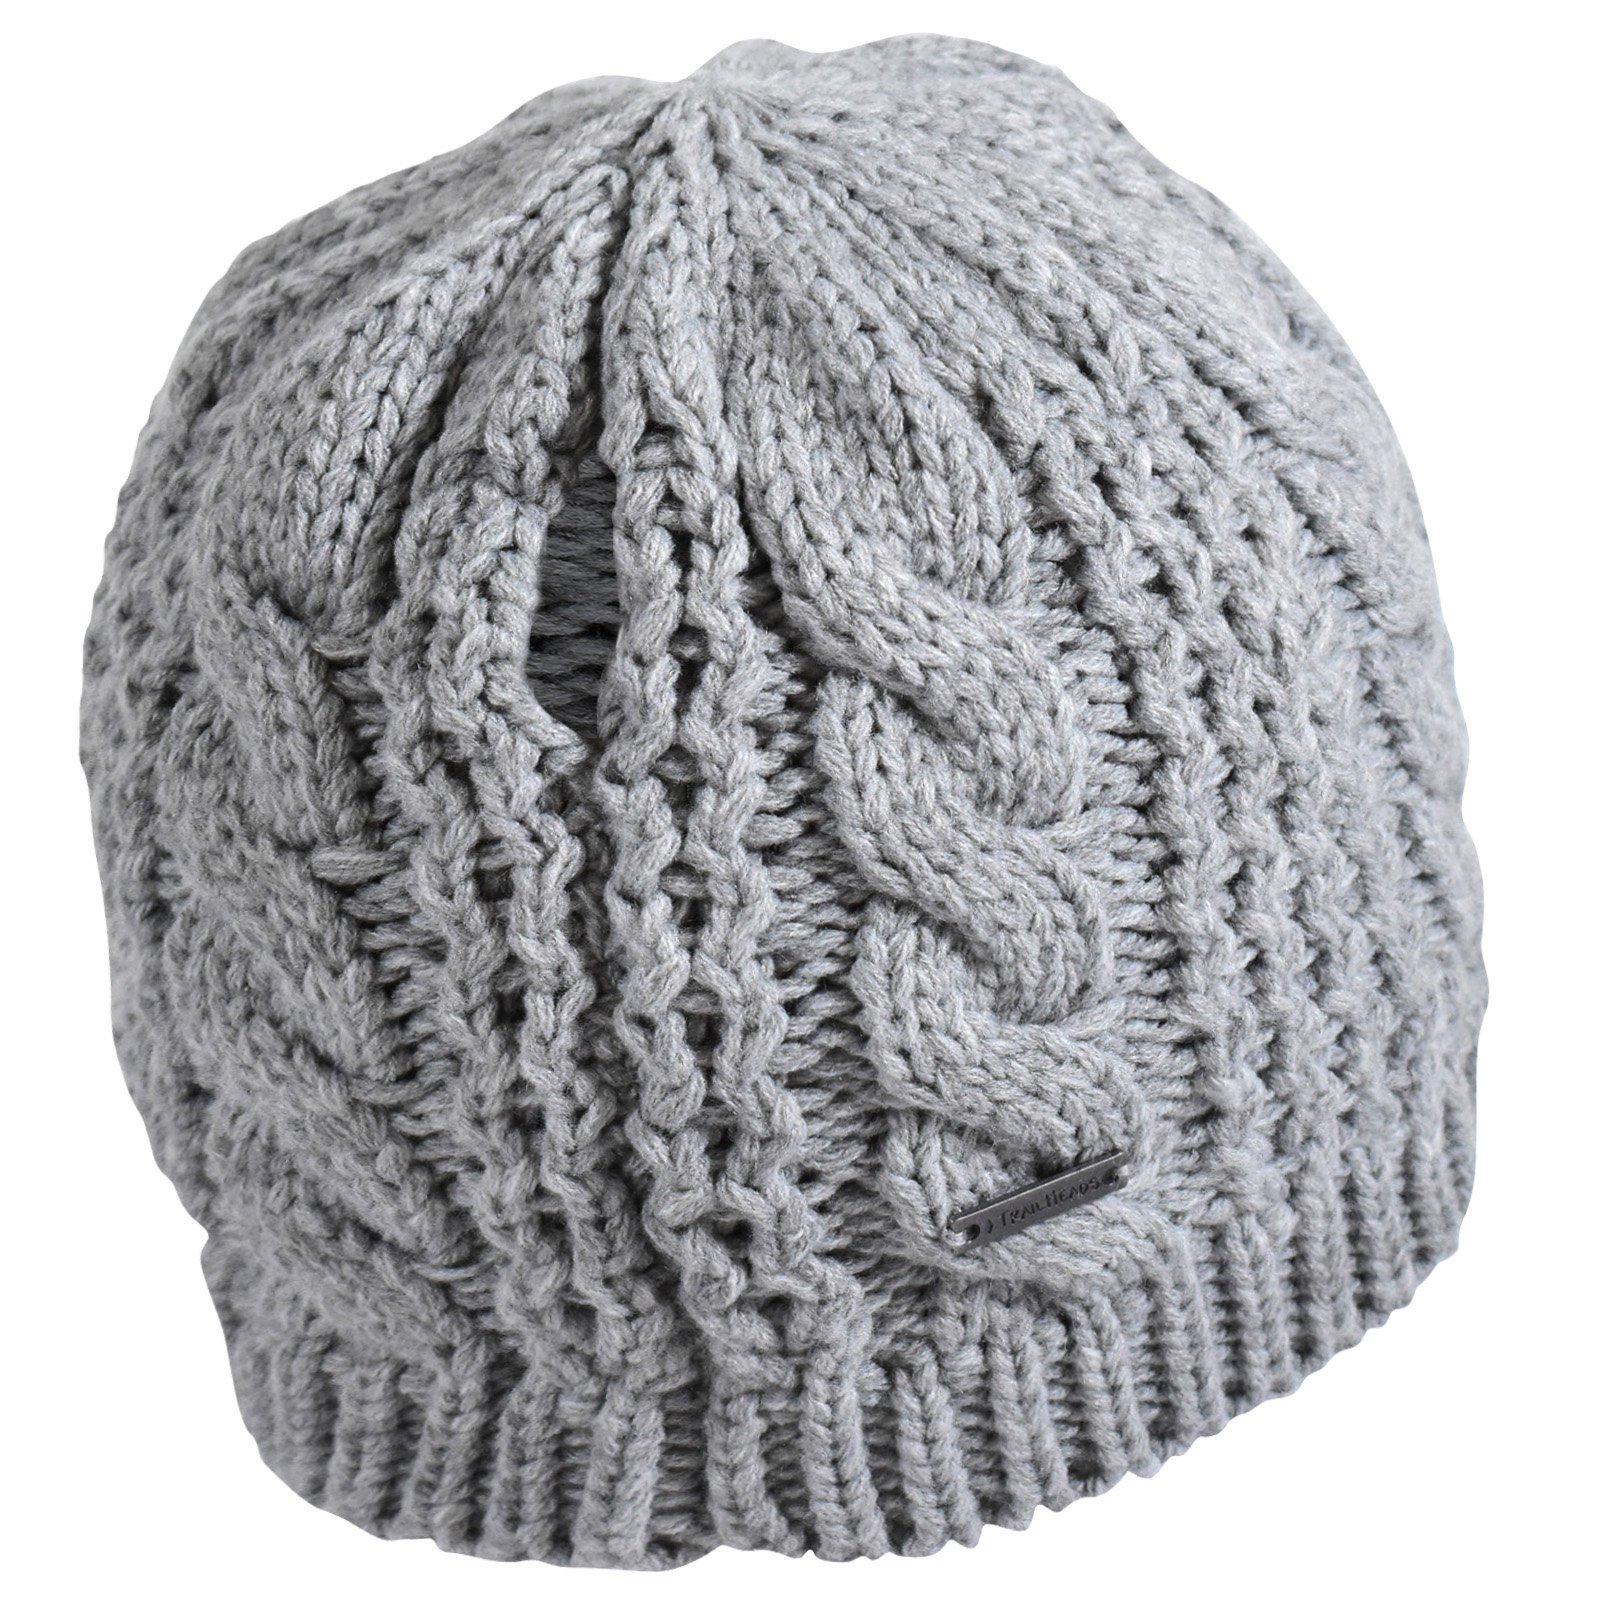 TrailHeads Women's Cable Knit Ponytail Beanie - storm grey by TrailHeads (Image #8)